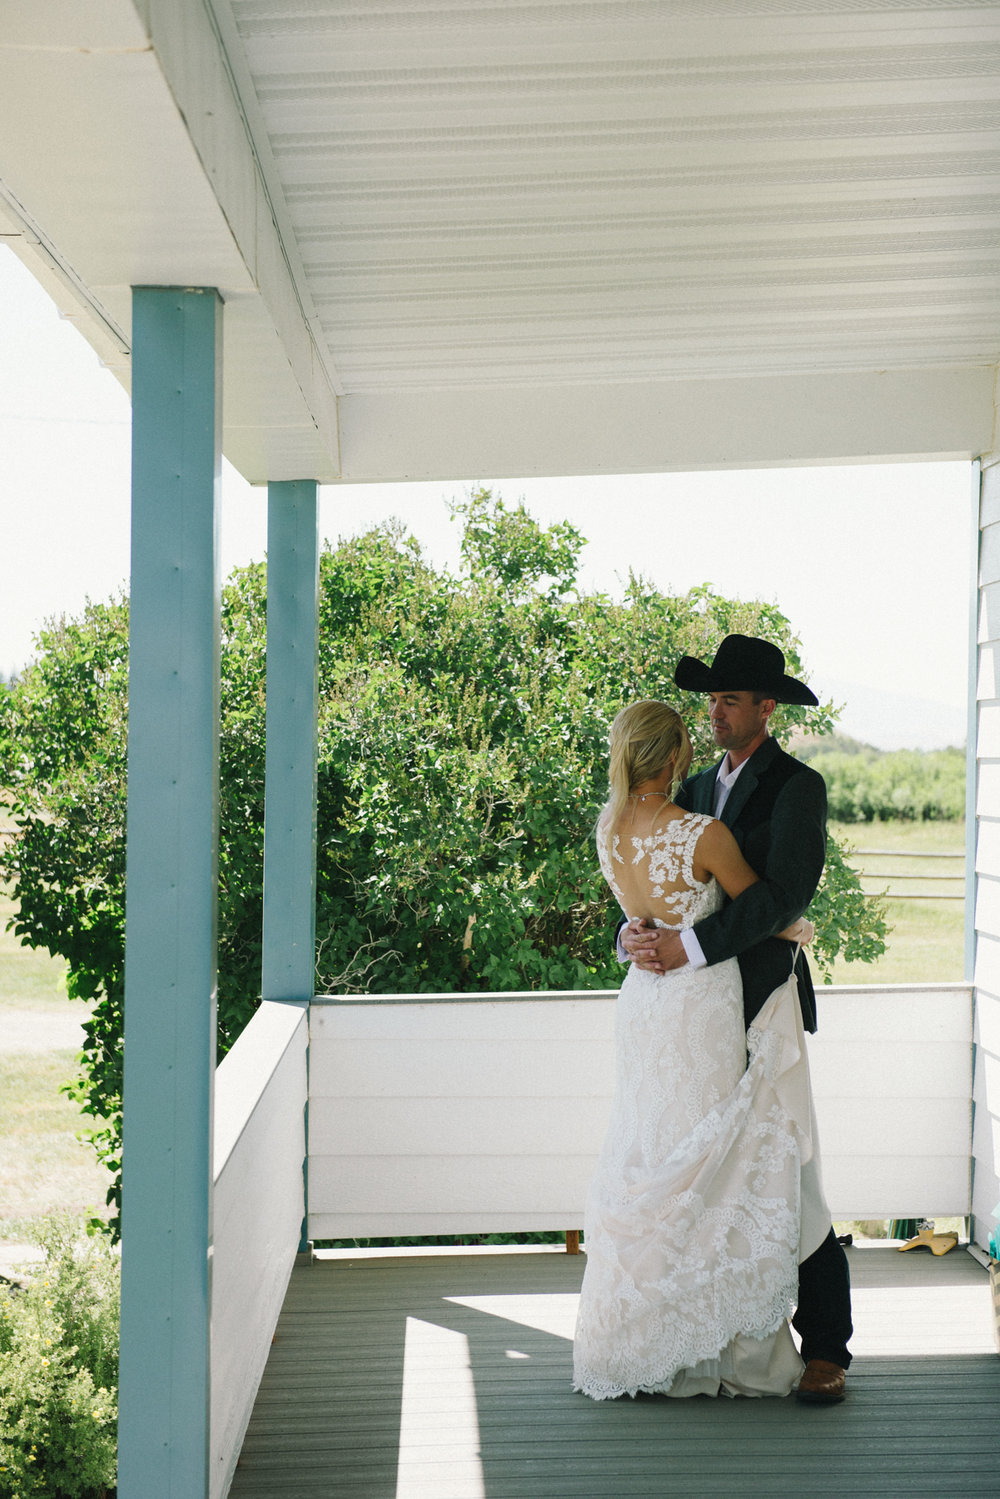 Erica Lind + Jeff Heim Wedding_Rustic Wedding_Montana Wedding_Kelsey Lane Photography-1214.jpg